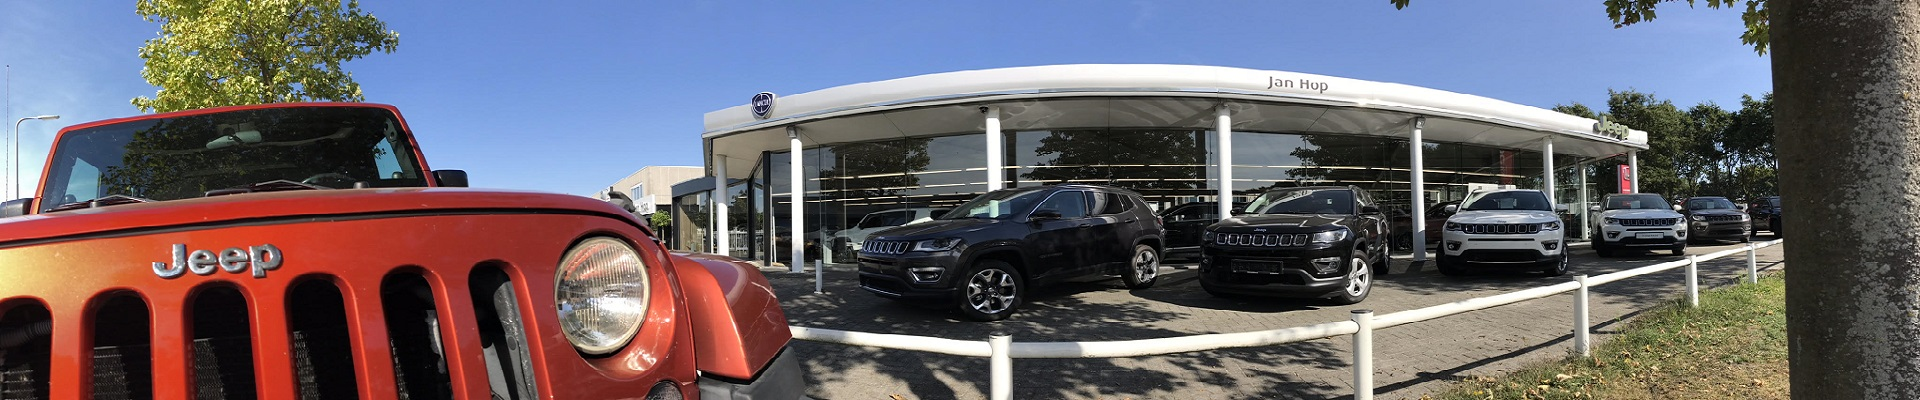 Jan Hop De Jeep dealer van Zuid Nederland